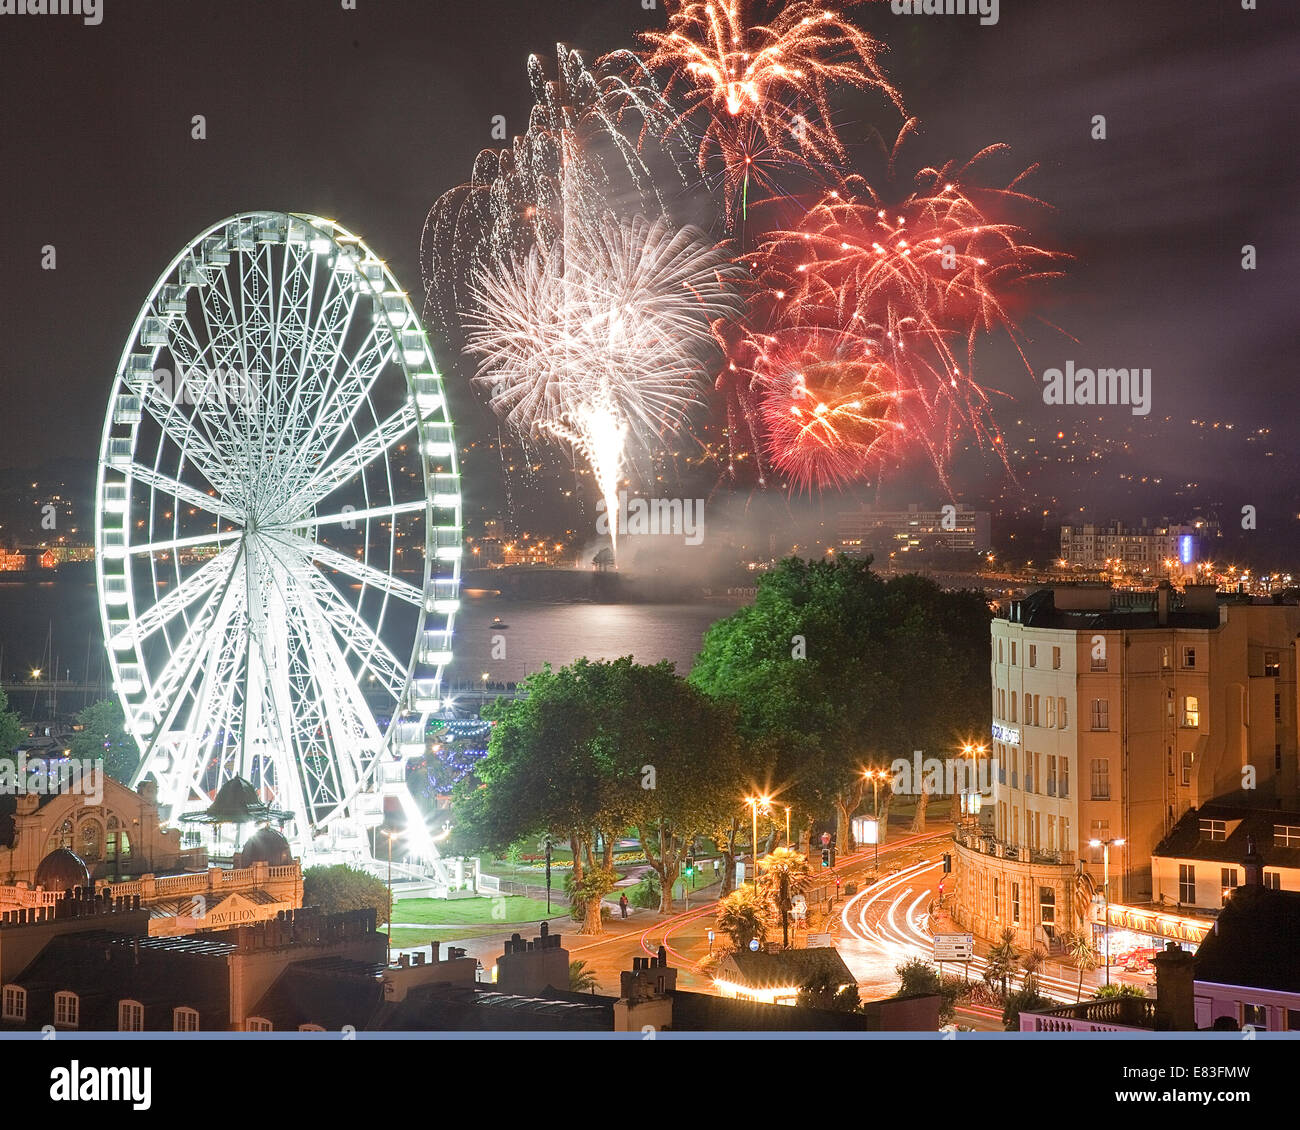 GB - DEVON: Fireworks over Torquay Stock Photo